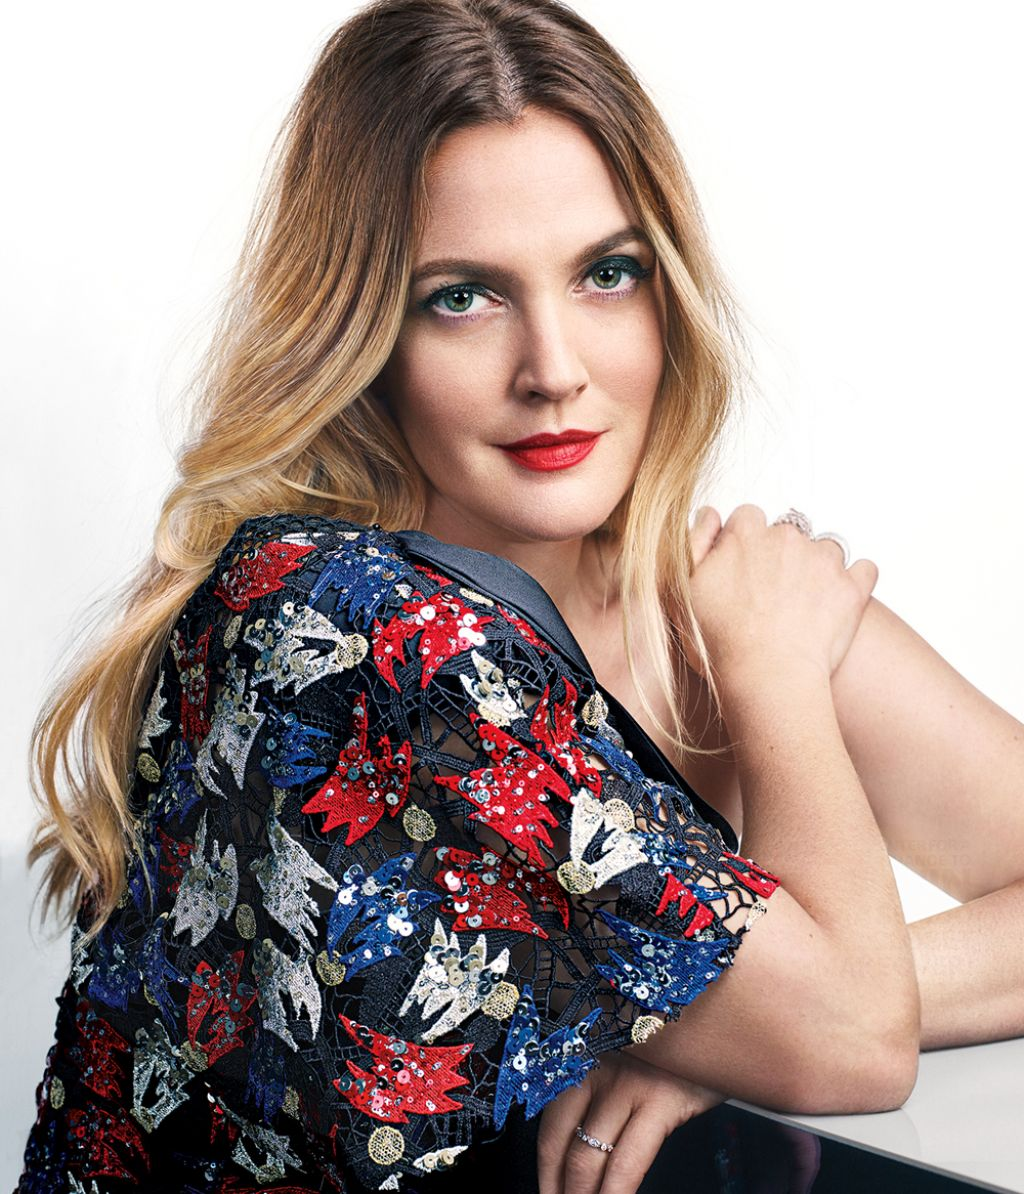 Drew Barrymore – Photoshoot for Marie Claire Magazine April 2016 Drew Barrymore